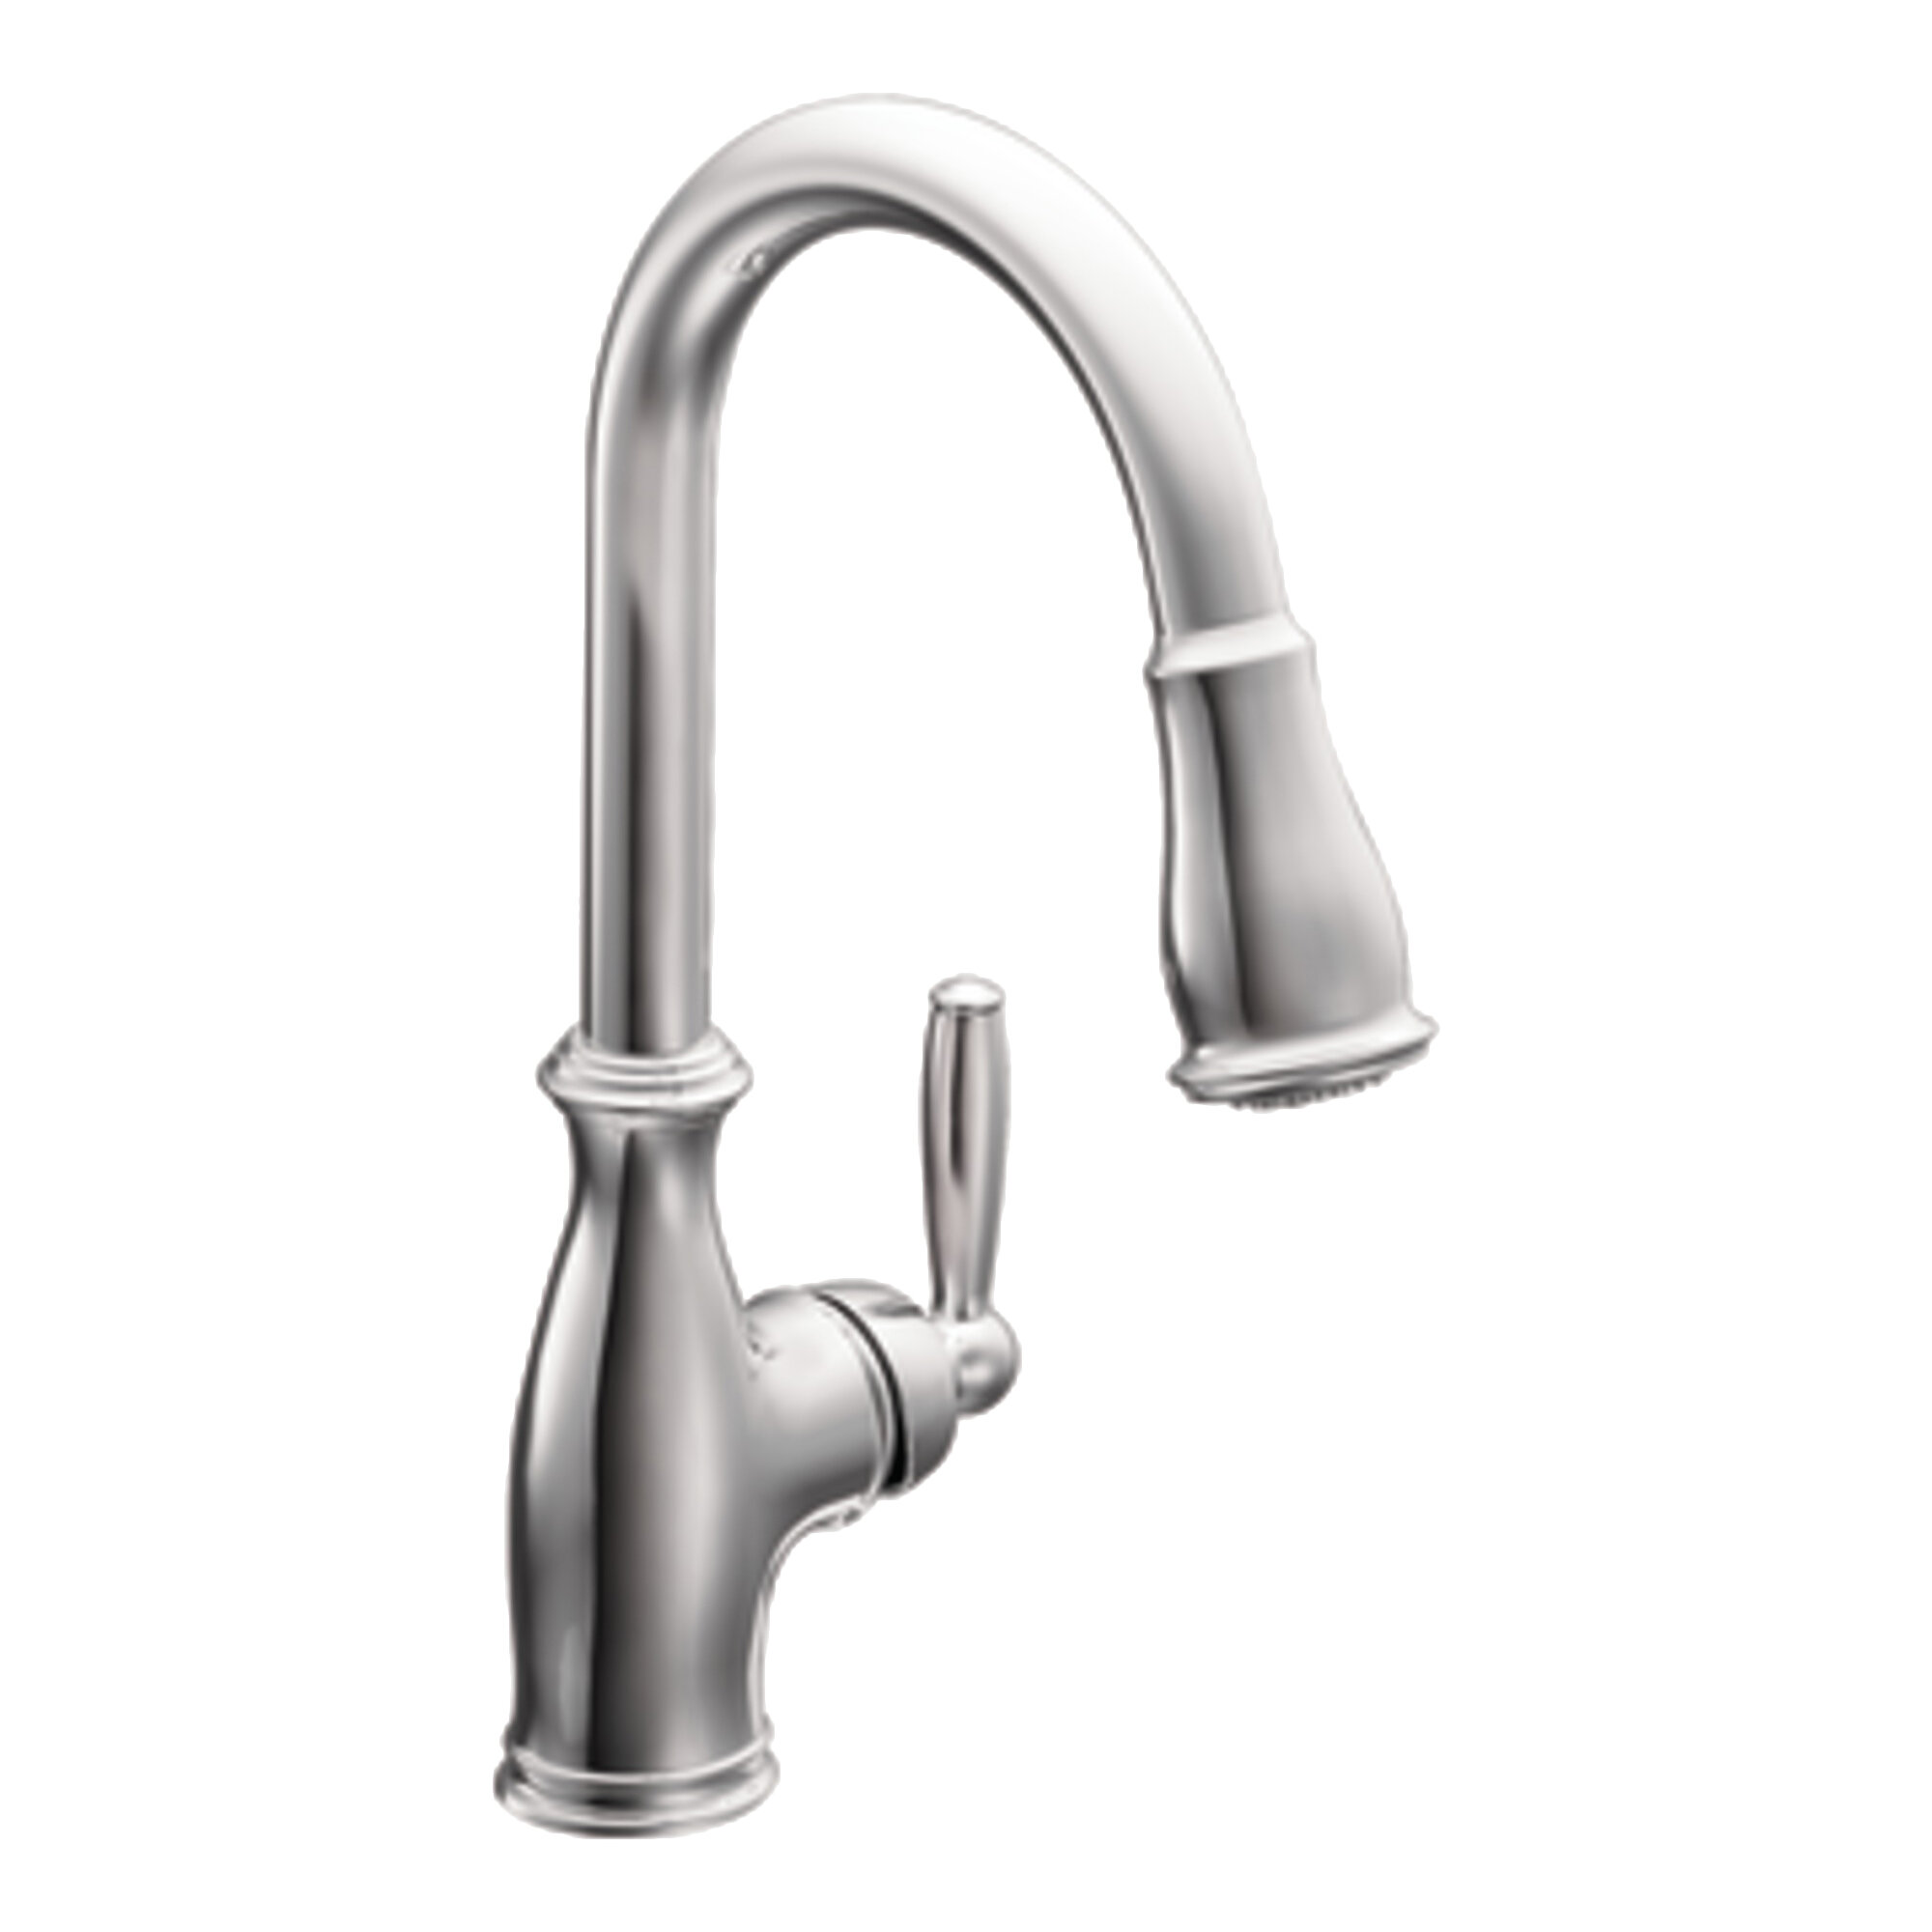 full stunning image ravishing of size faucets faucet for on sensor touchless wonderful picture bathroom gallery with touch off and intended best reviews kitchen